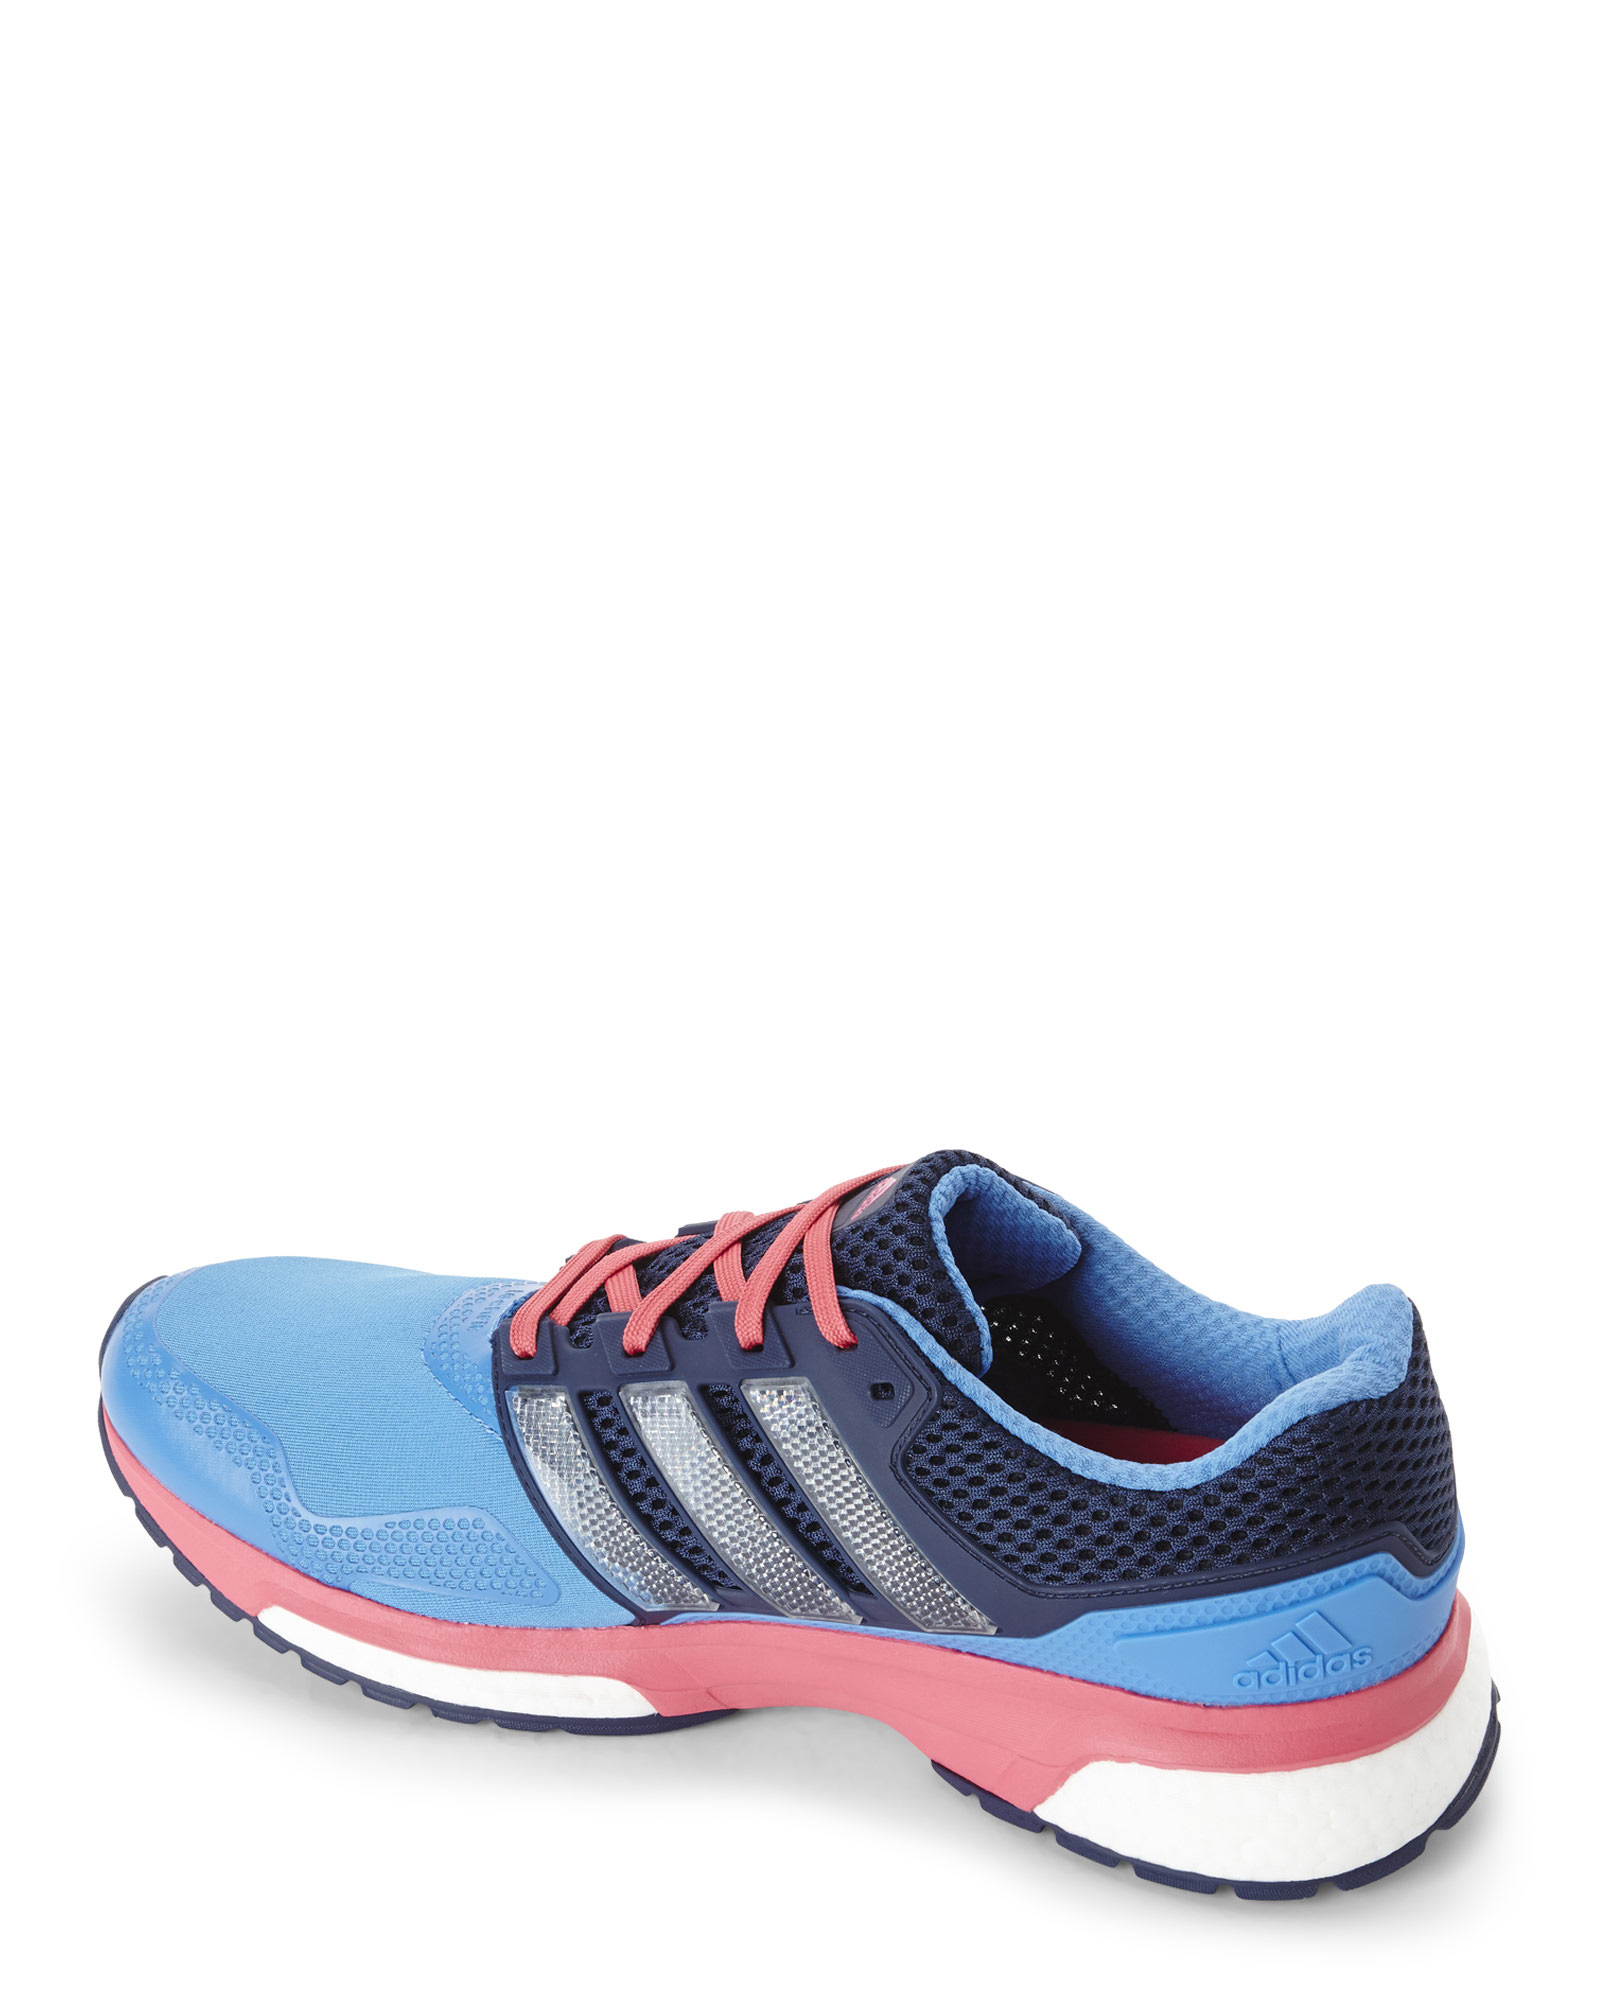 Lyst - Adidas Blue   Navy Response Boost Techfit Sneakers in Blue f06cc8cec